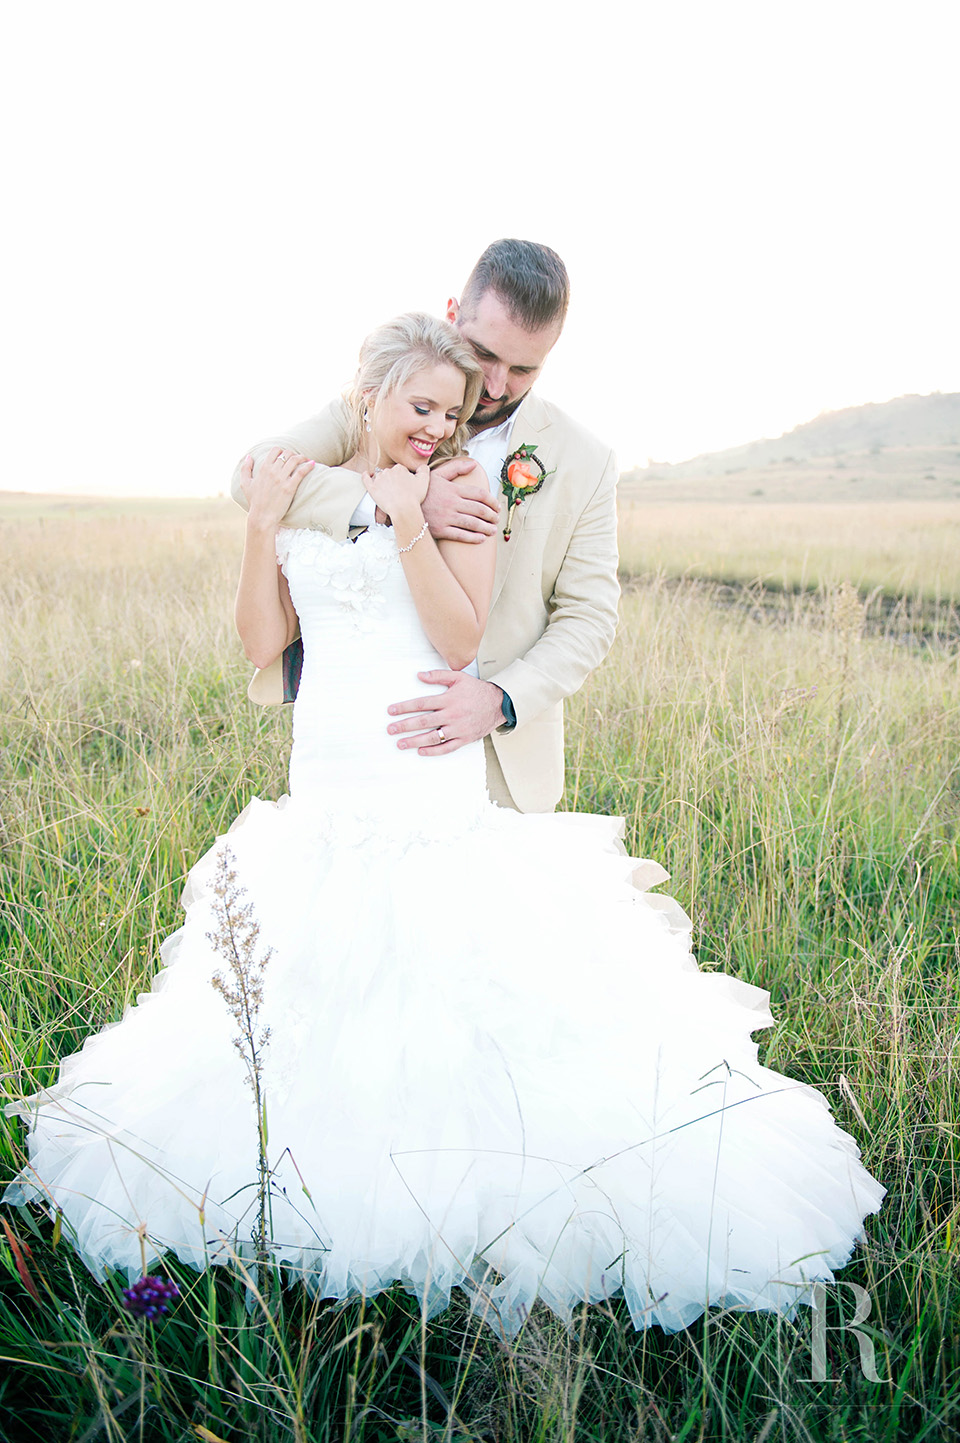 RYAN PARKER PHOTOGRAPHY_GABI & ROBBY_WEDDING_STONE CELLAR_GAUTENG-5554.jpg